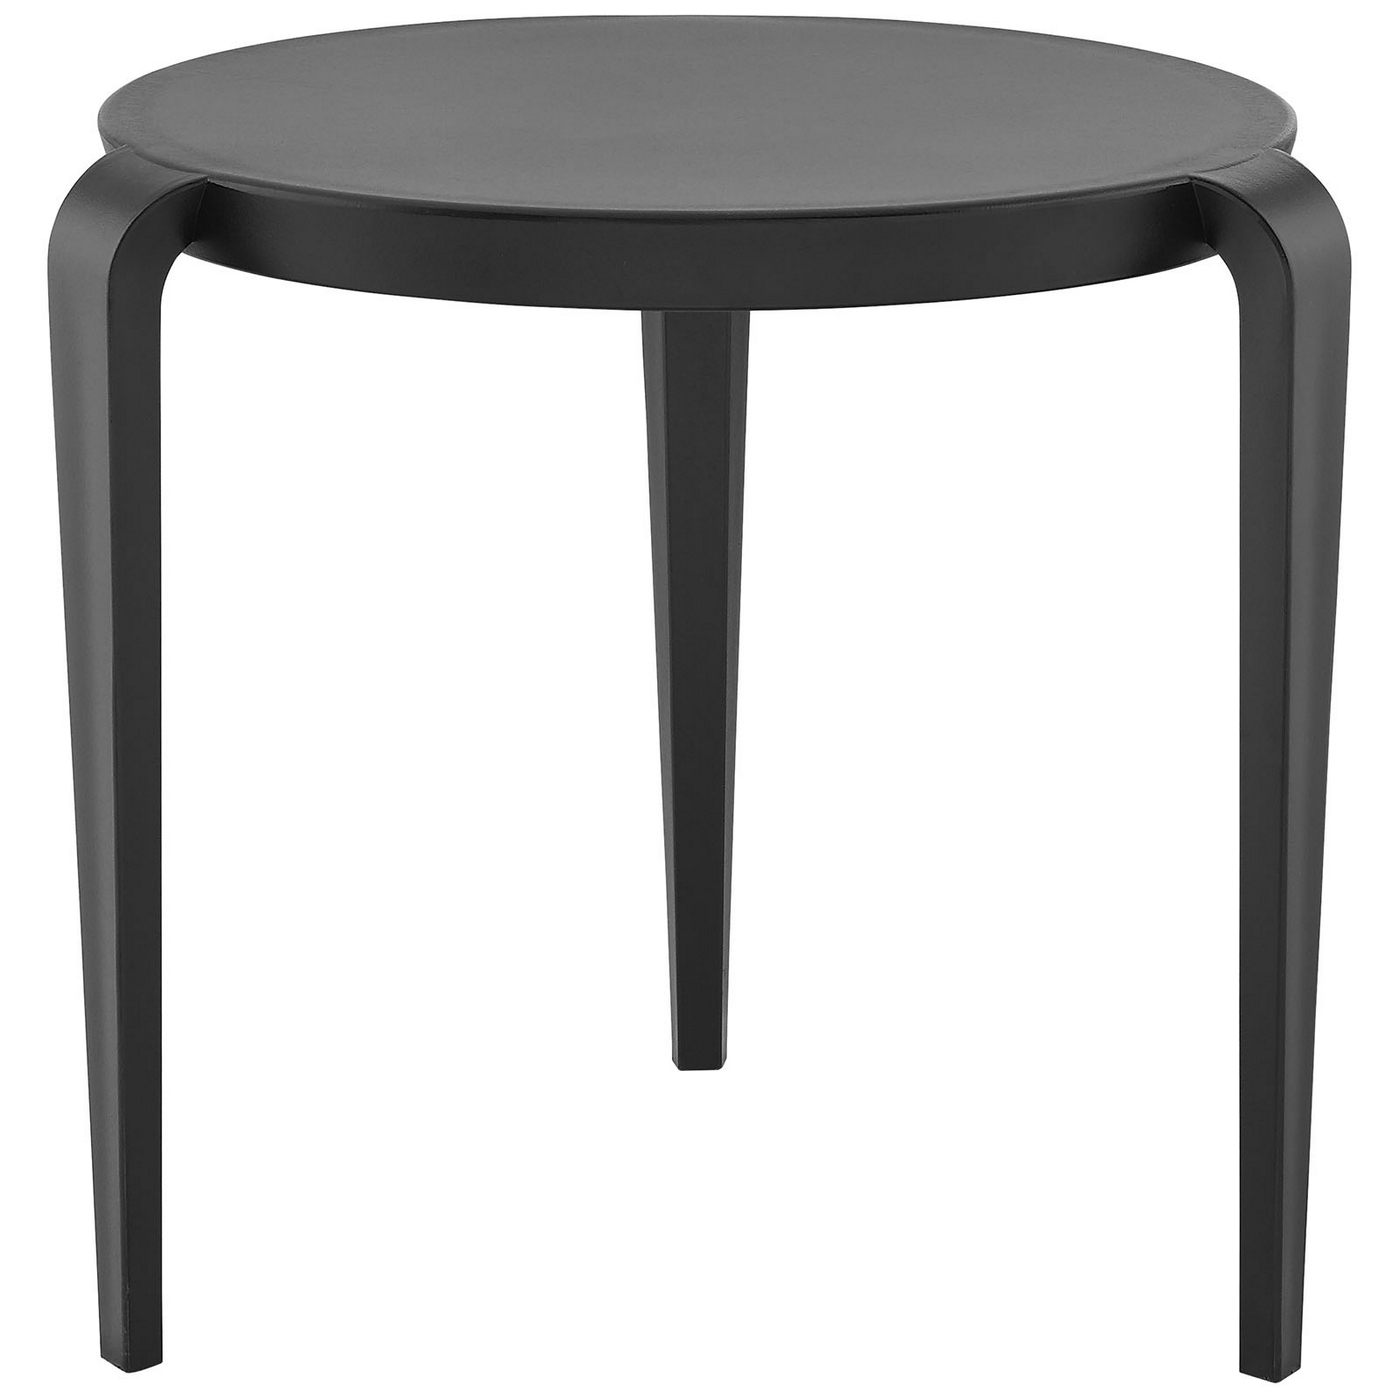 spin contemporary 3 legged round plastic side table black eei 1712 blk